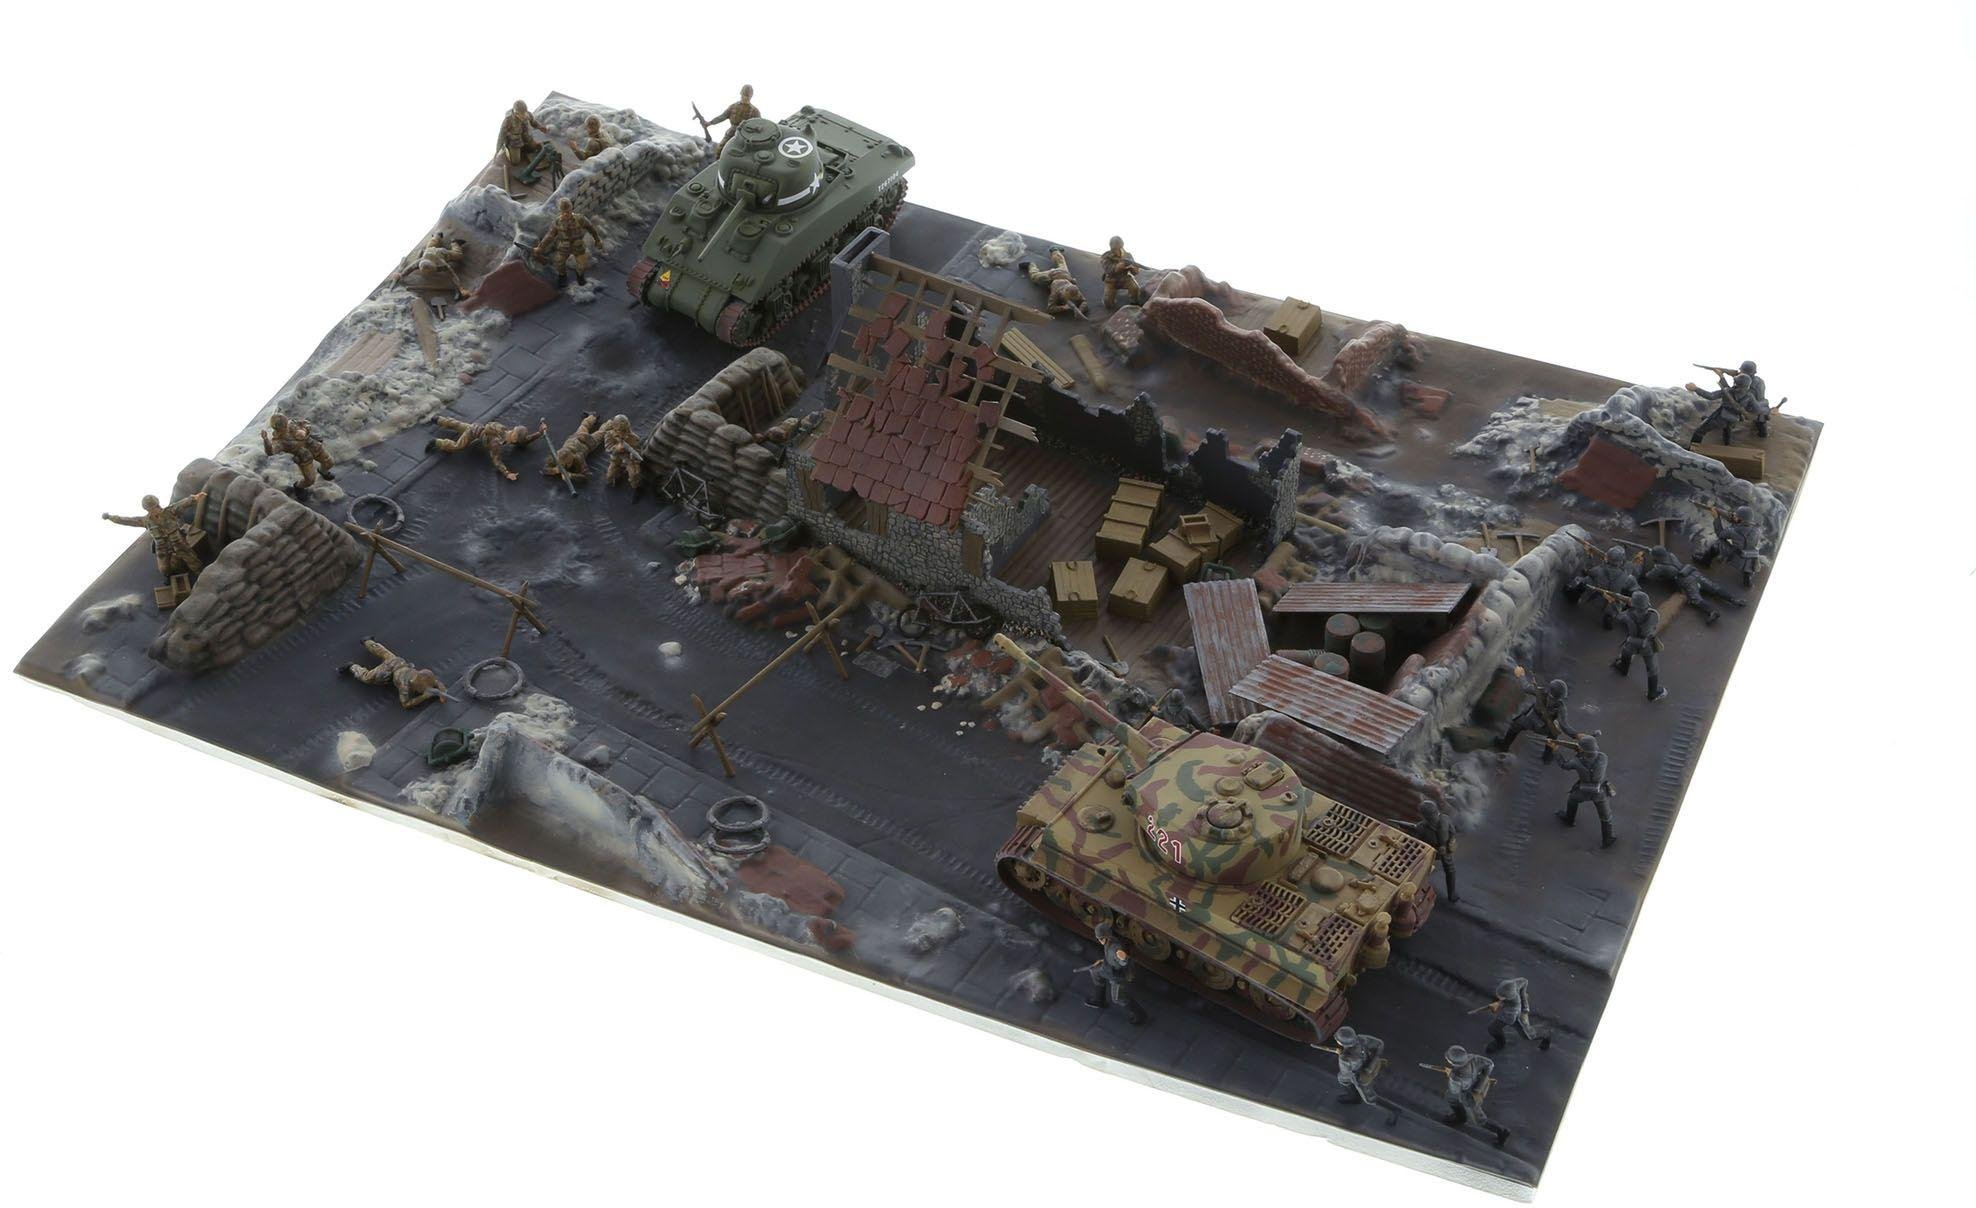 Image of Airfix D-Day Battlefront Model Kit.